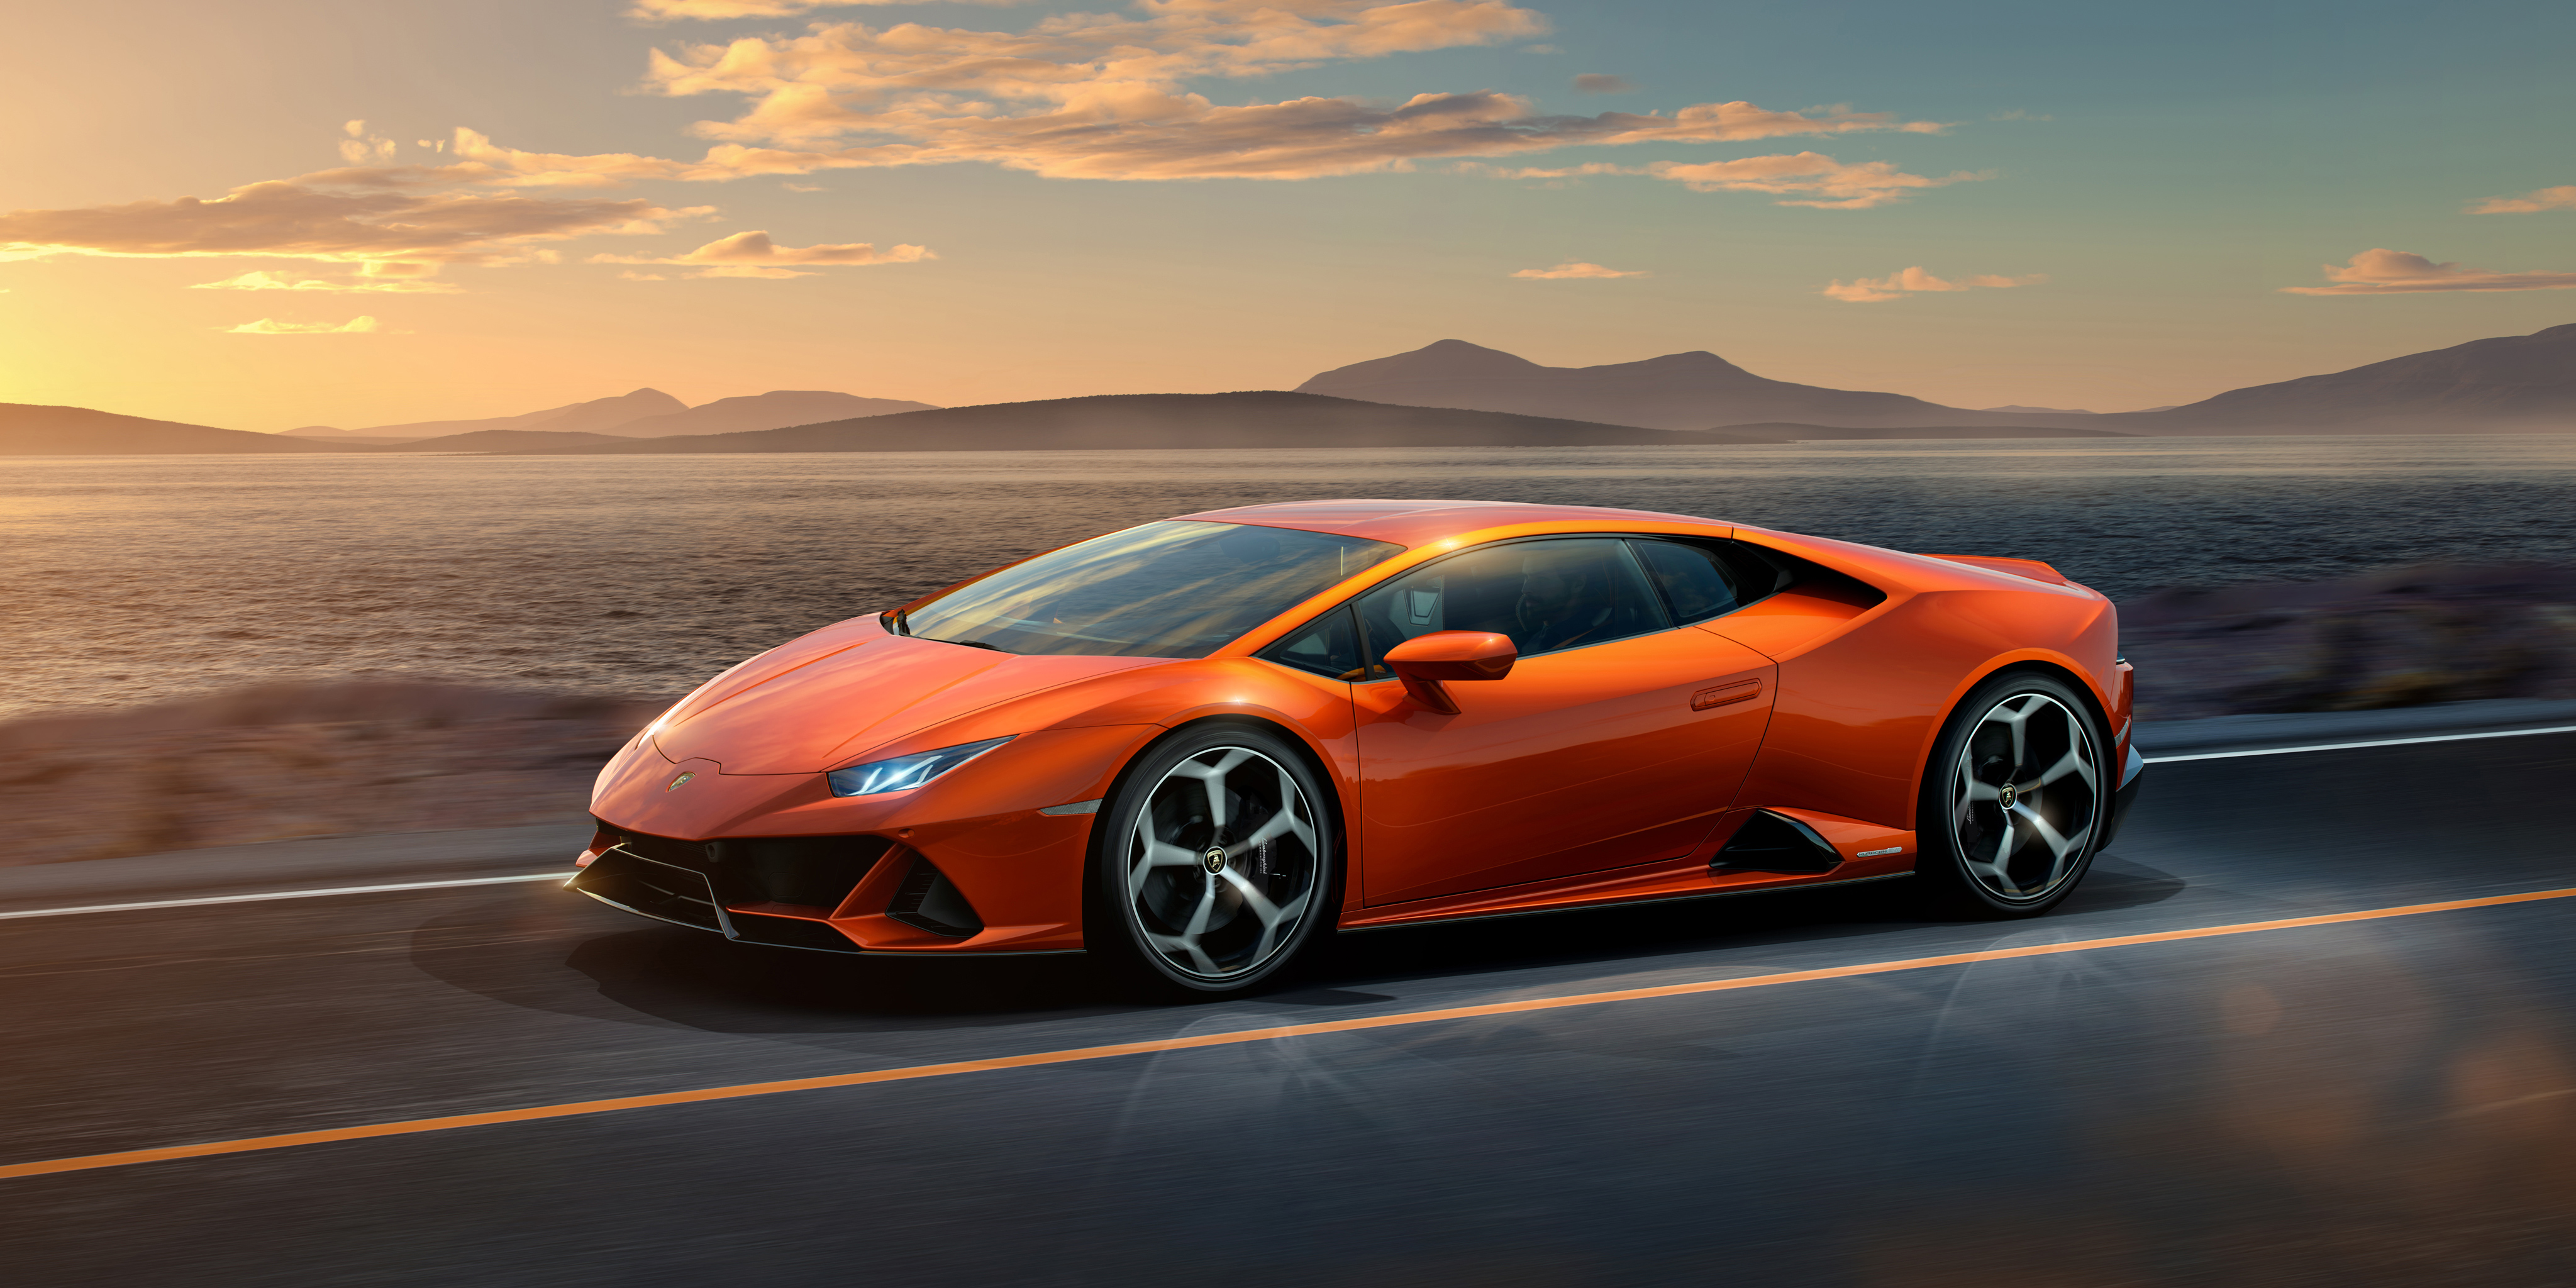 Wallpapers Lambo Posted By Christopher Johnson